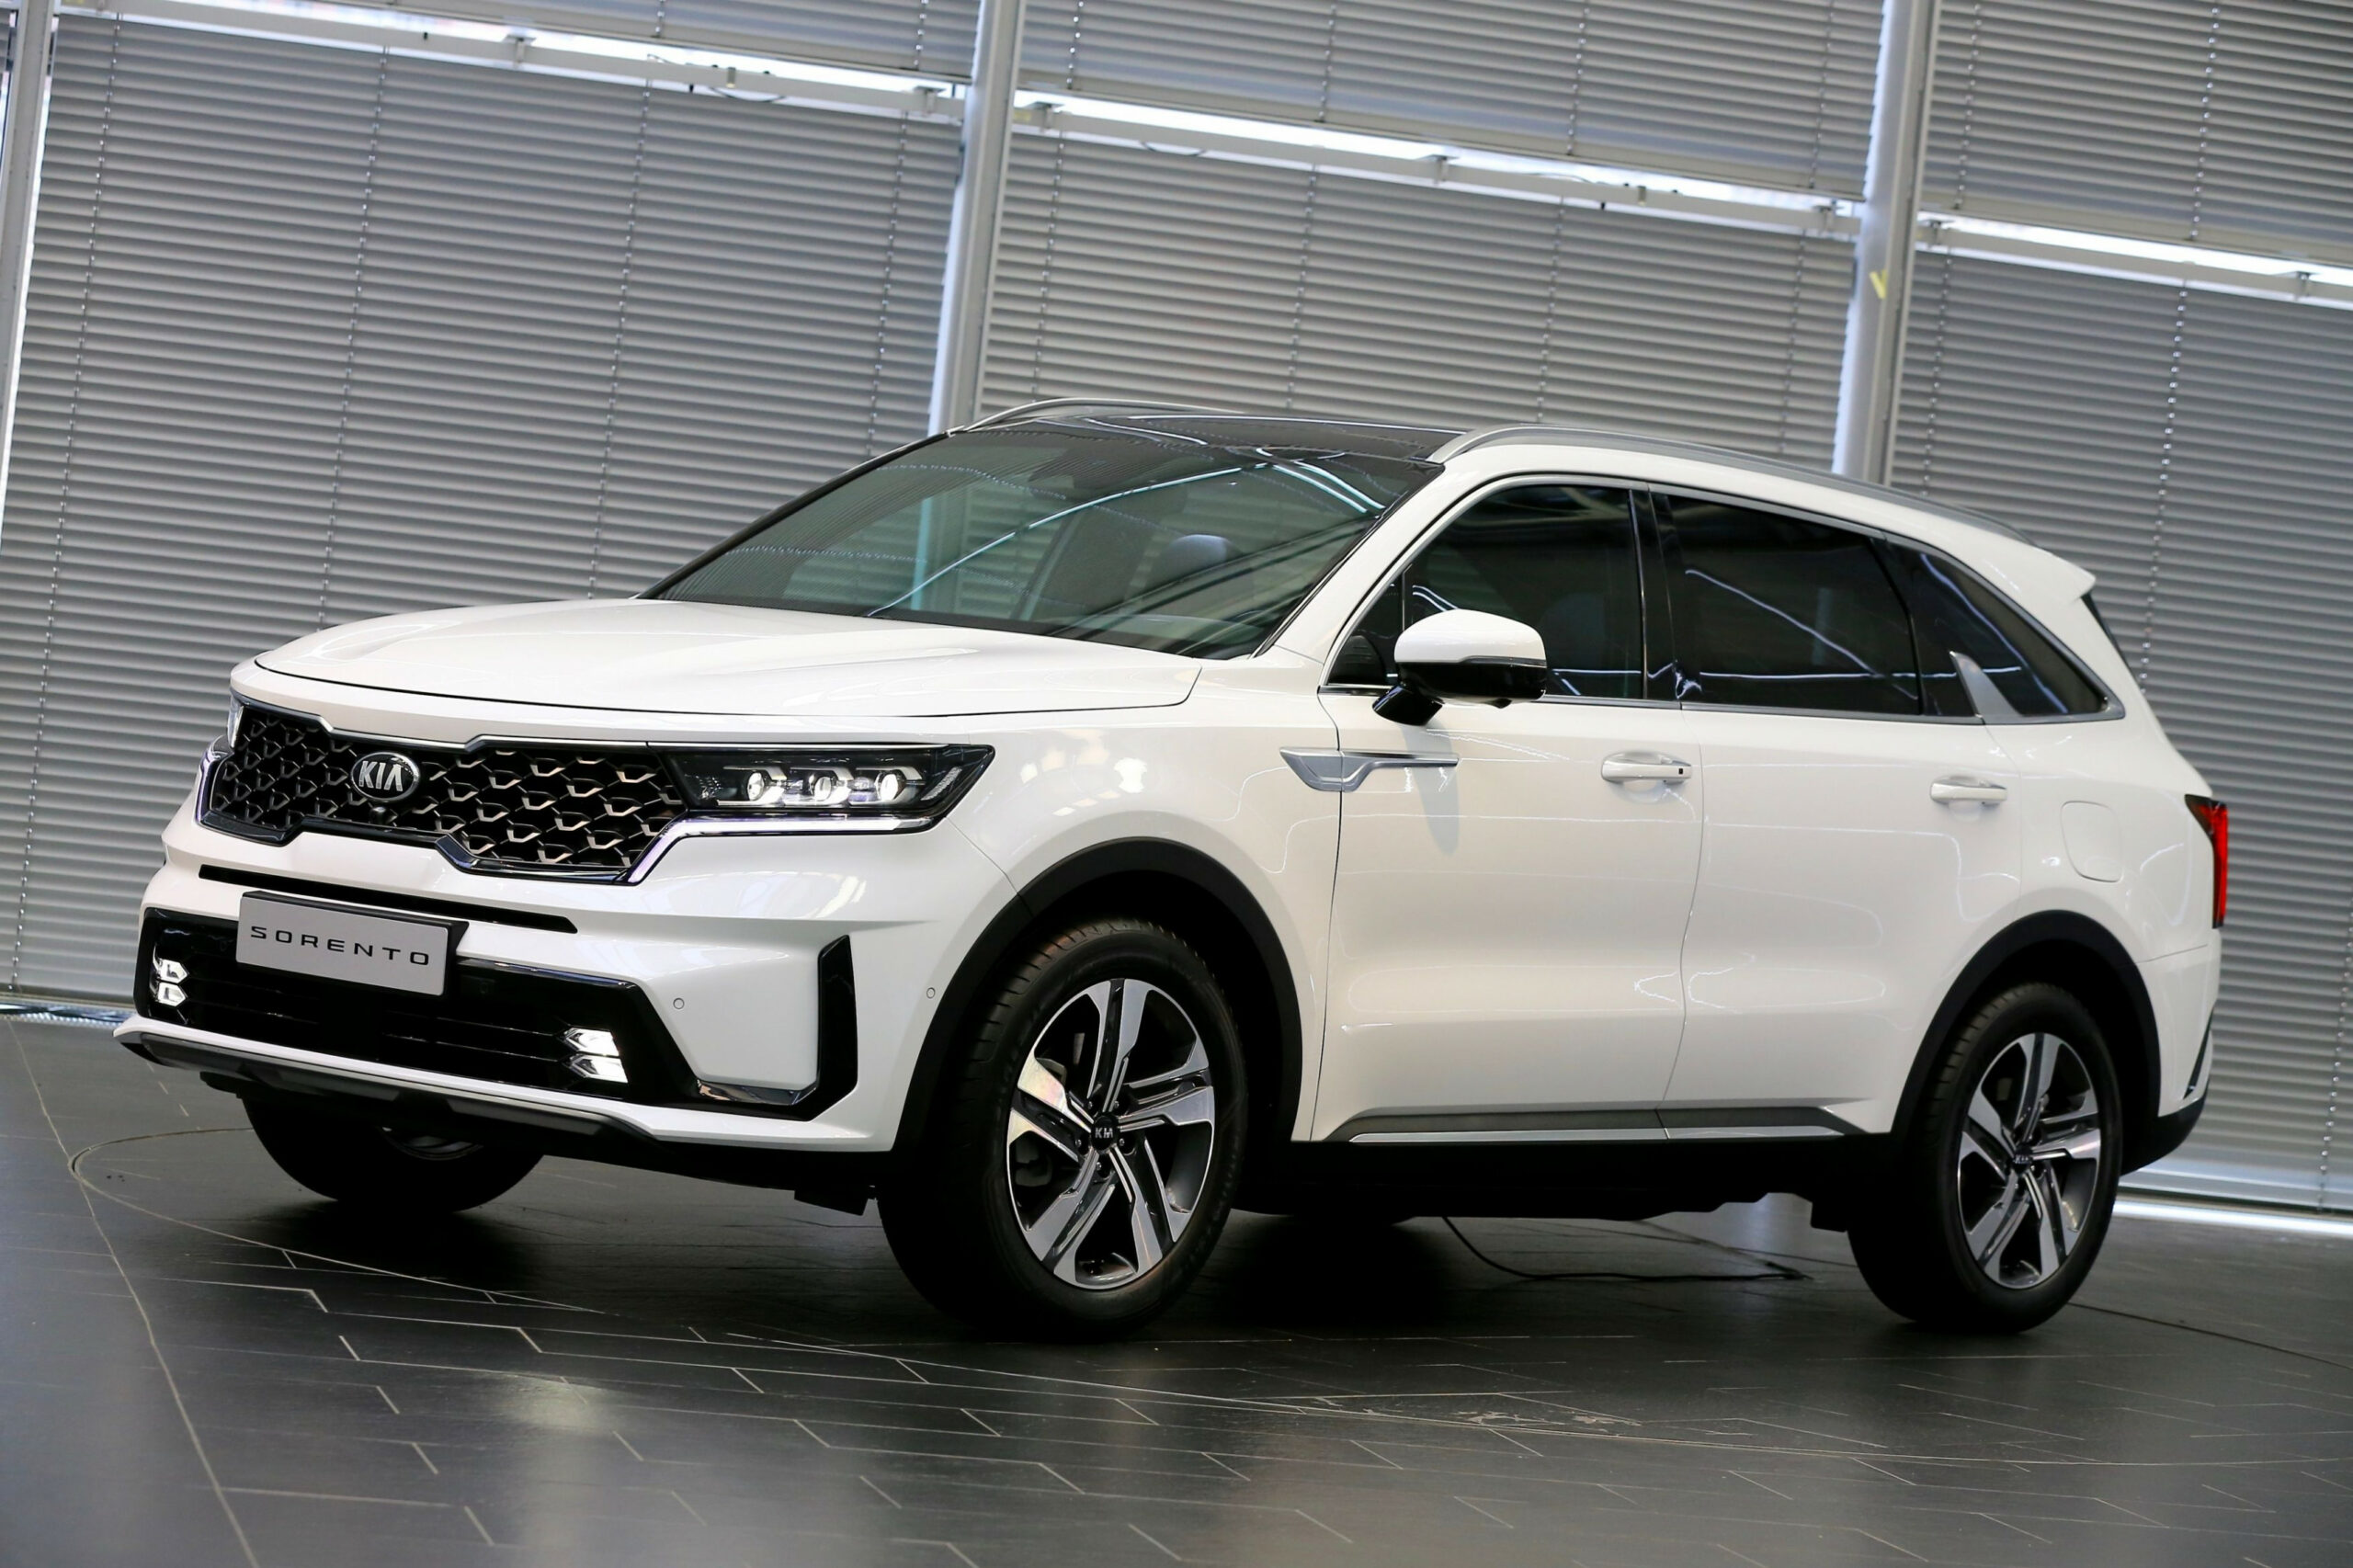 Price and Review When Does 2022 Kia Sorento Come Out